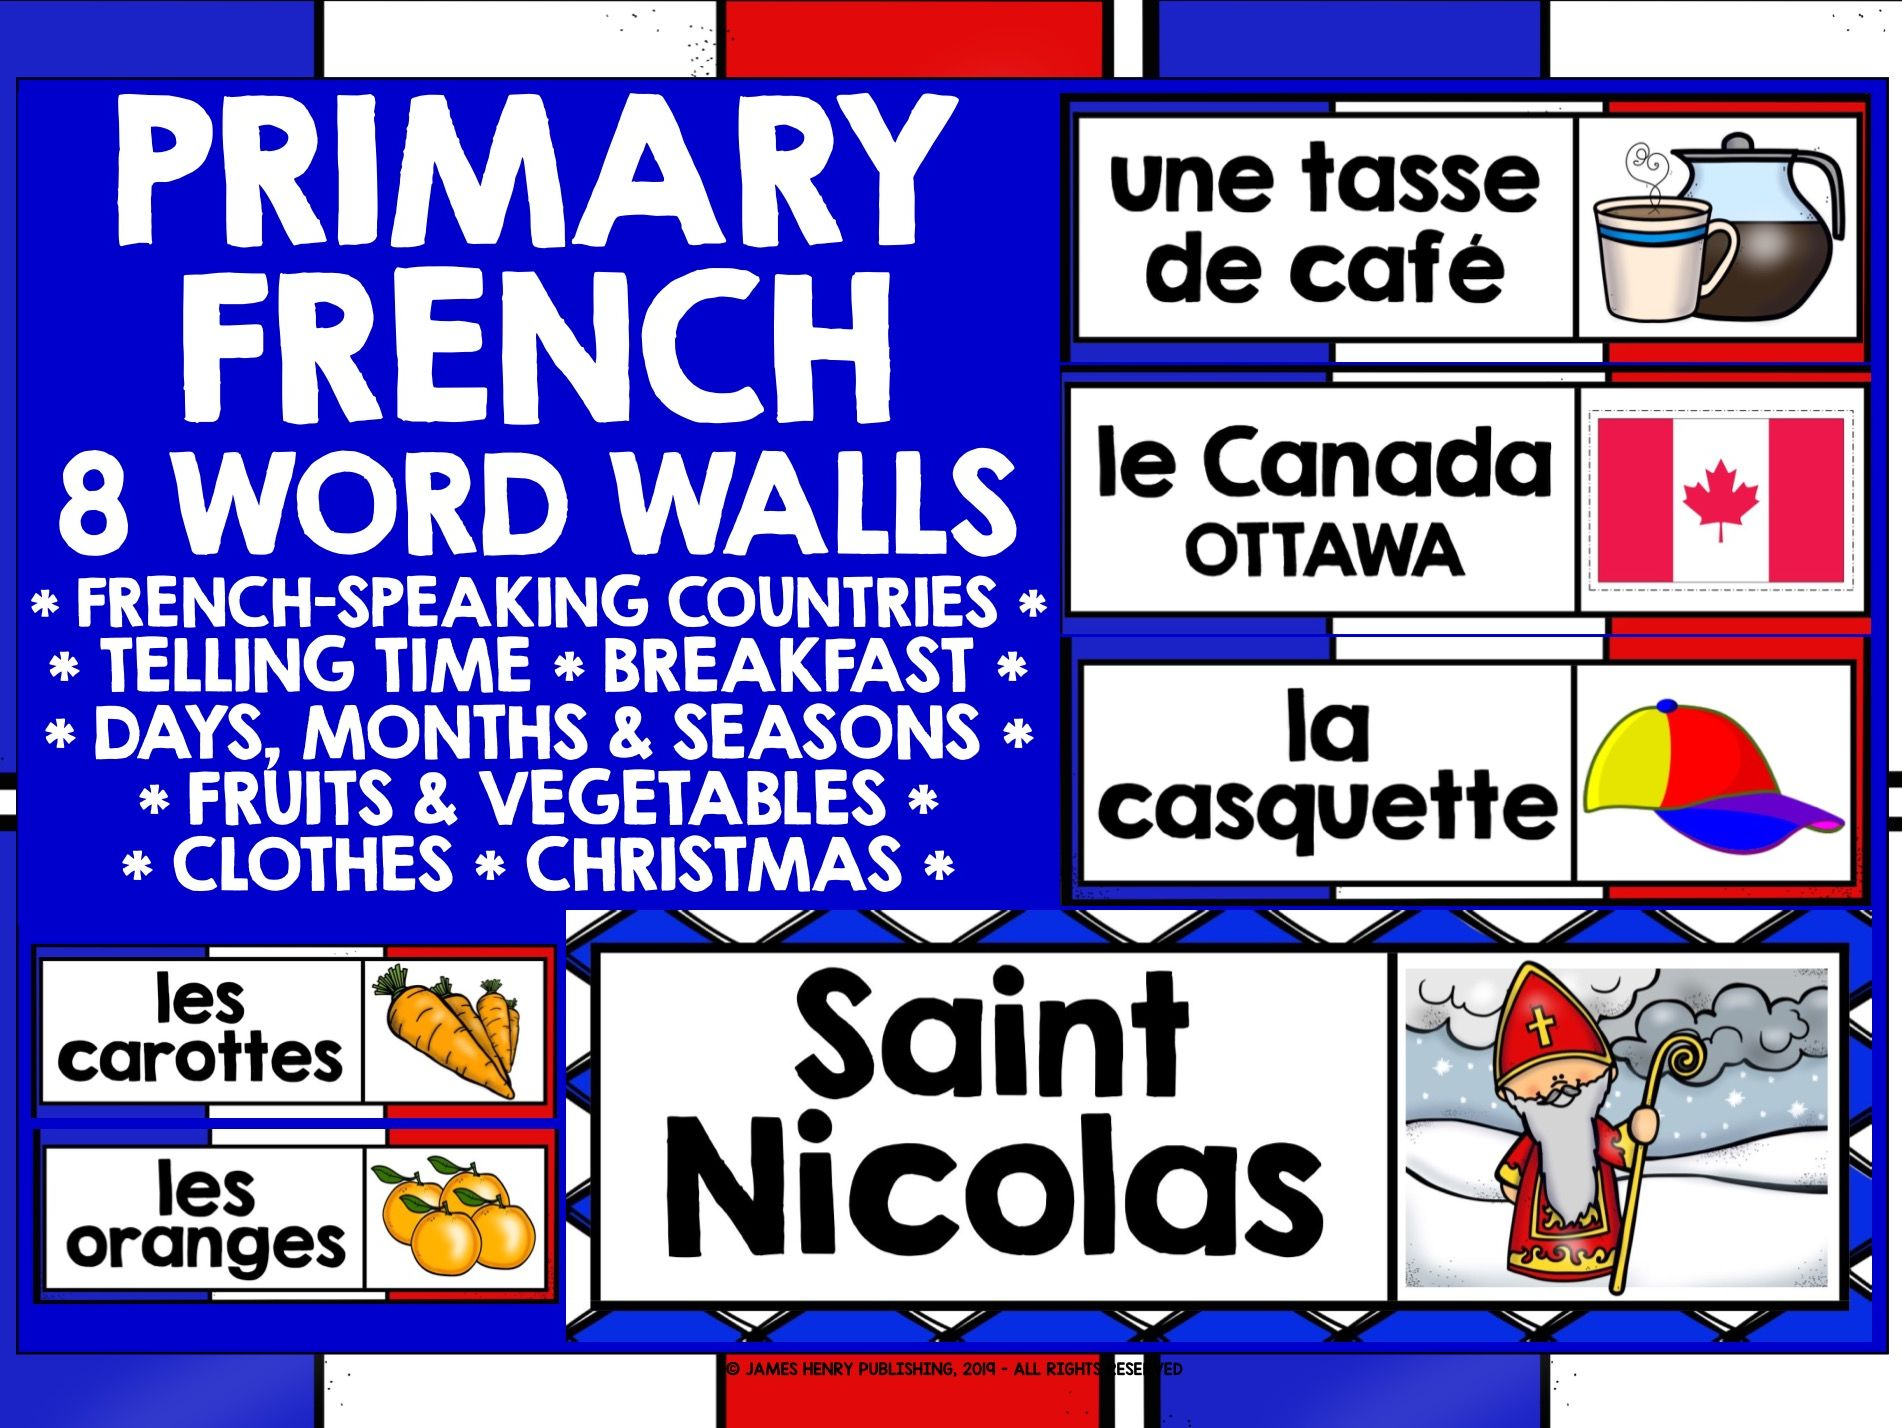 PRIMARY FRENCH WORD WALL BUNDLE #1